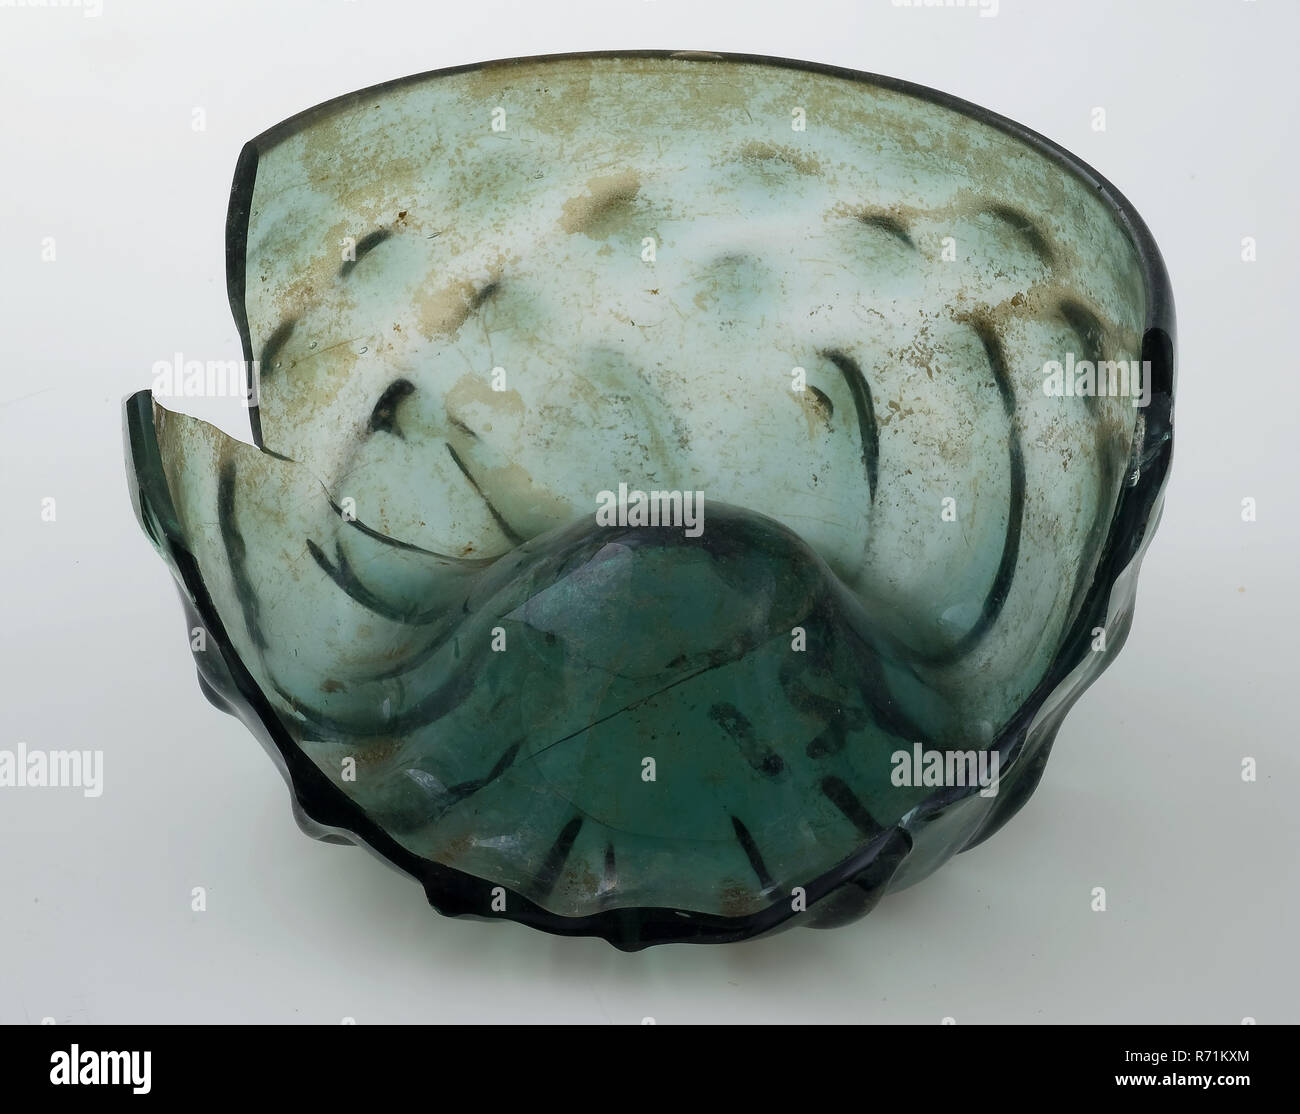 Fragment of low drinking glass with crossed rib pattern, maigelein, maigelein drinking glass drinking utensils tableware holder soil find glass of wood glass, in form blown glass application Fragment of low drinking glass maigelein in clear green glass (forest glass). Stuffed bottom with pontilemark and star pattern of twelve ridges continuous over wall. Wall decorated with crossed ribbed pattern that extends up to about 1.5 cm from annealed edge Minimal archeology iris serving drinking wine - Stock Image